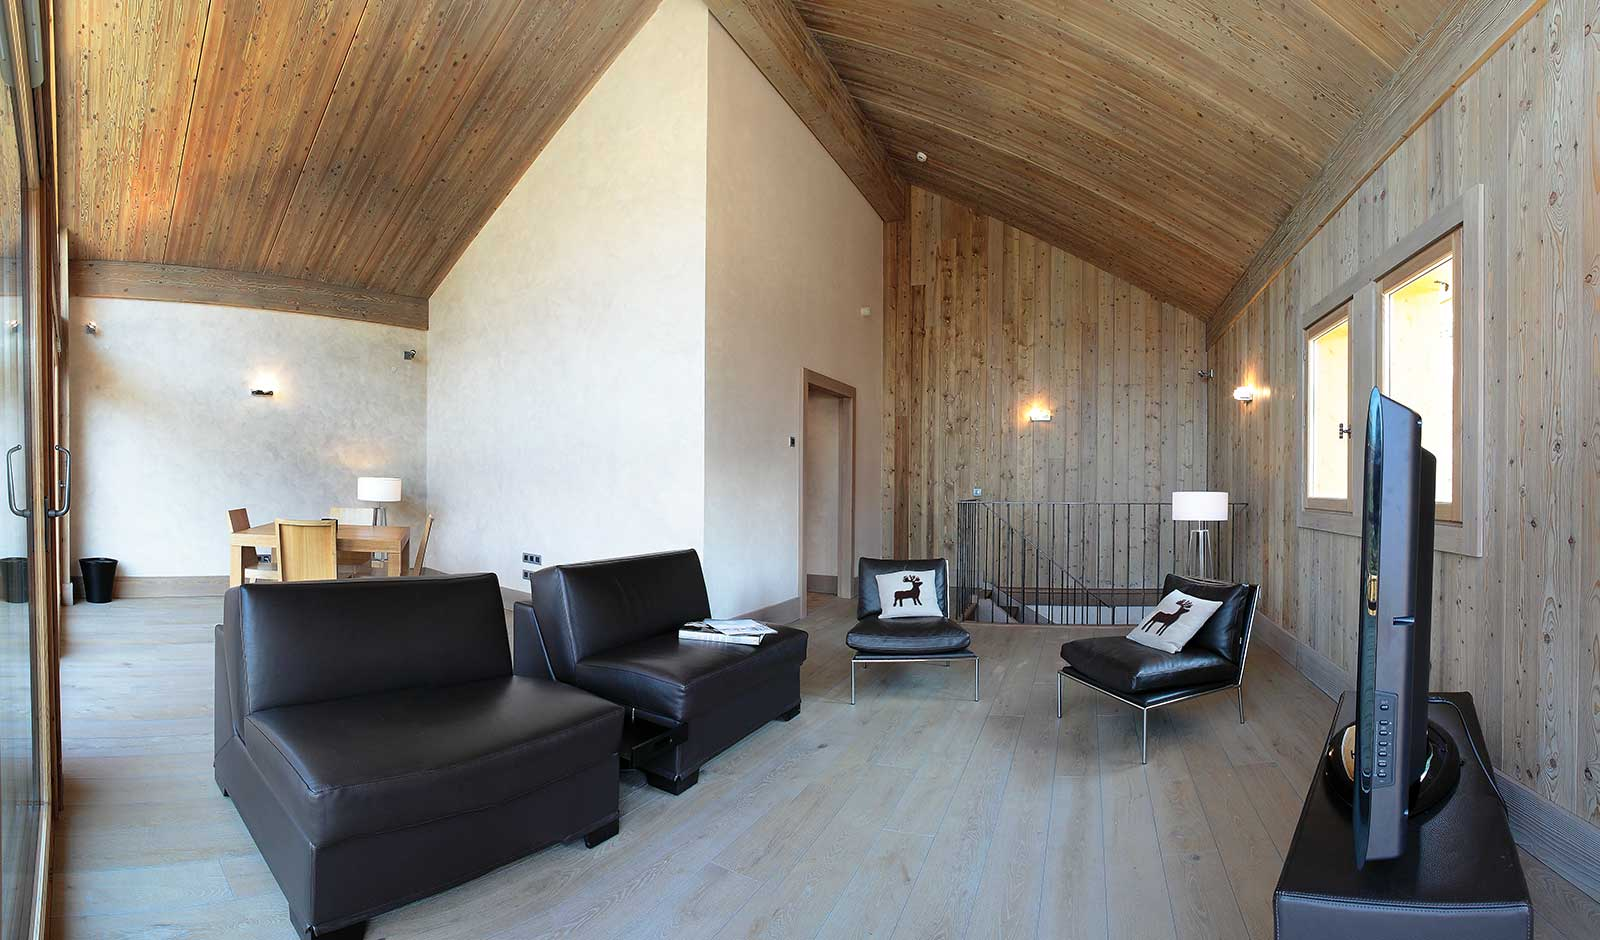 hotel-adray-telebar-4-atelier-crea-and-co-architecte-design-project-manager-meribel-savoie